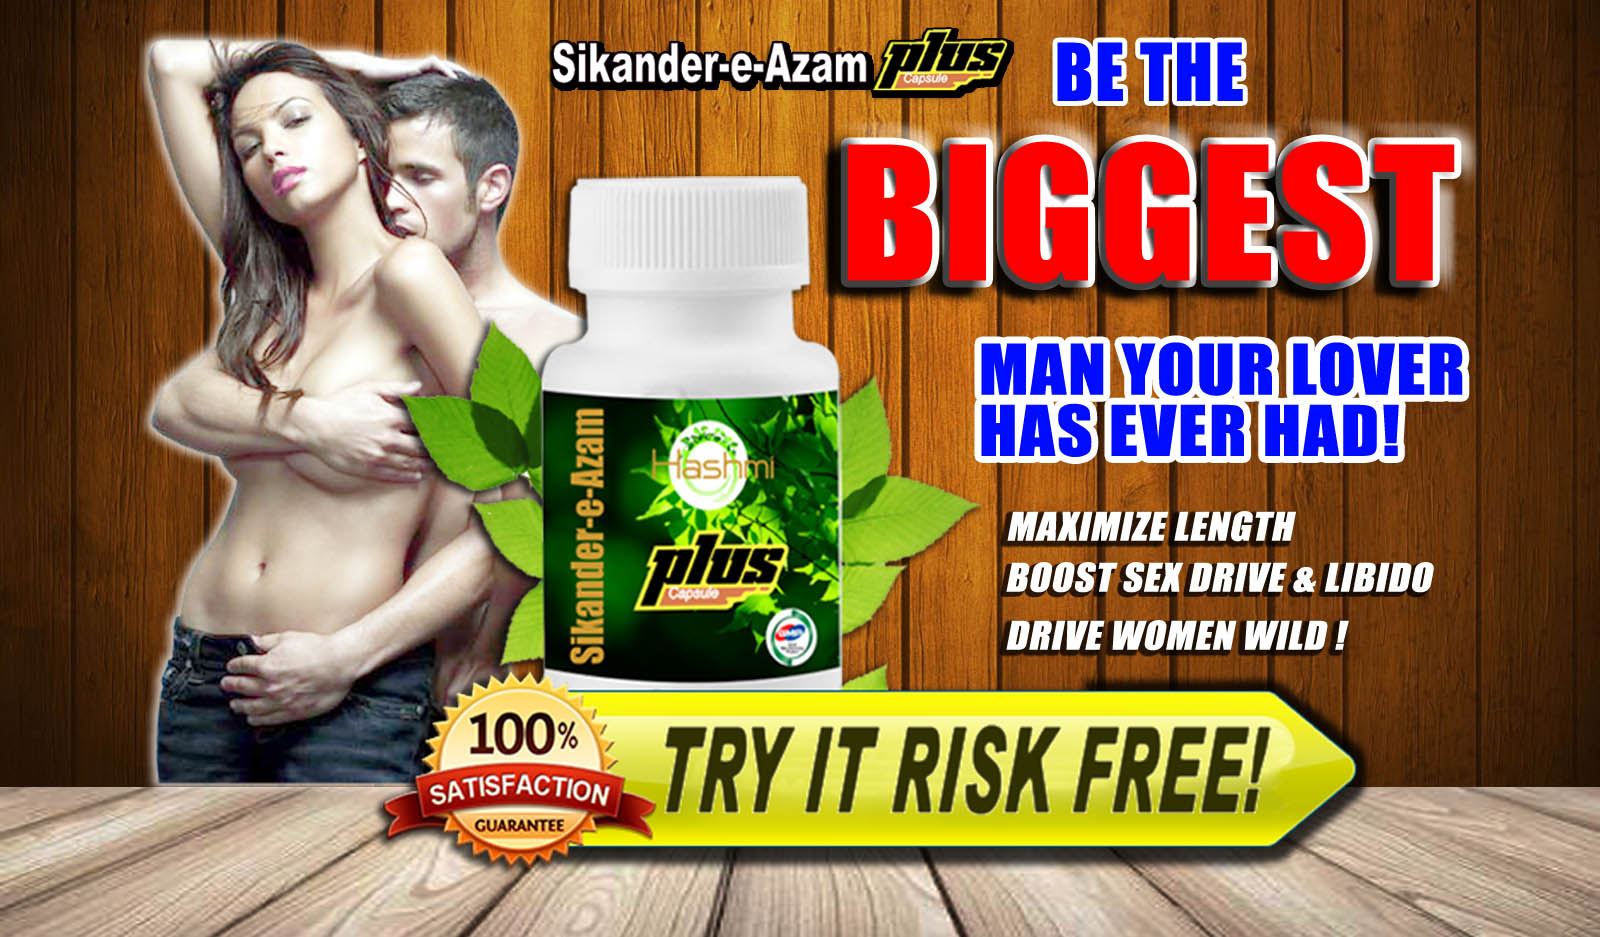 SIKANDER E AZAM PLUS CAPSULE - Be The Biggest Man Your Lover Has Ever Had!